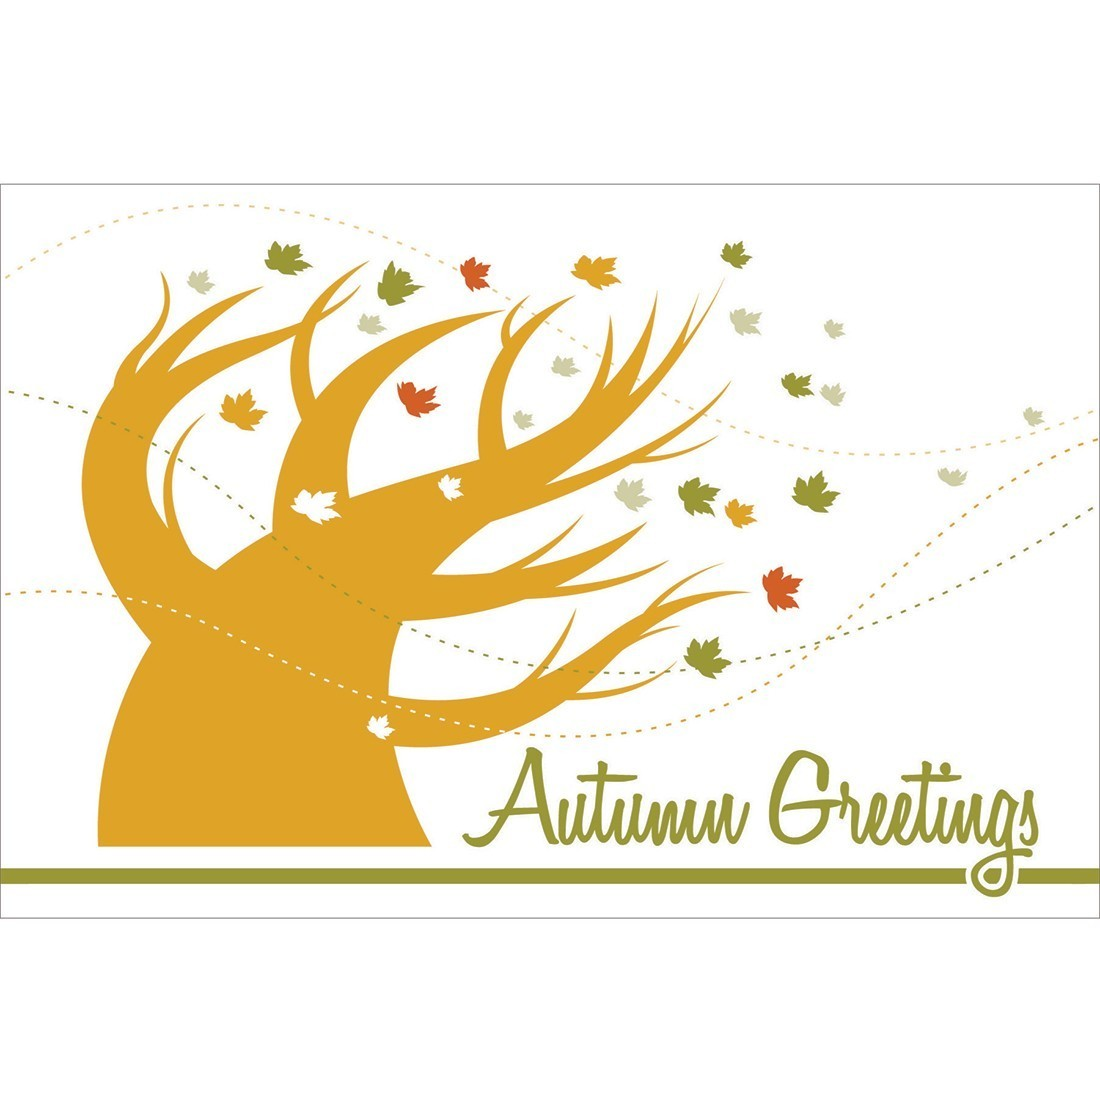 Autumn Greetings Blowing Tree Greeting Cards [image]